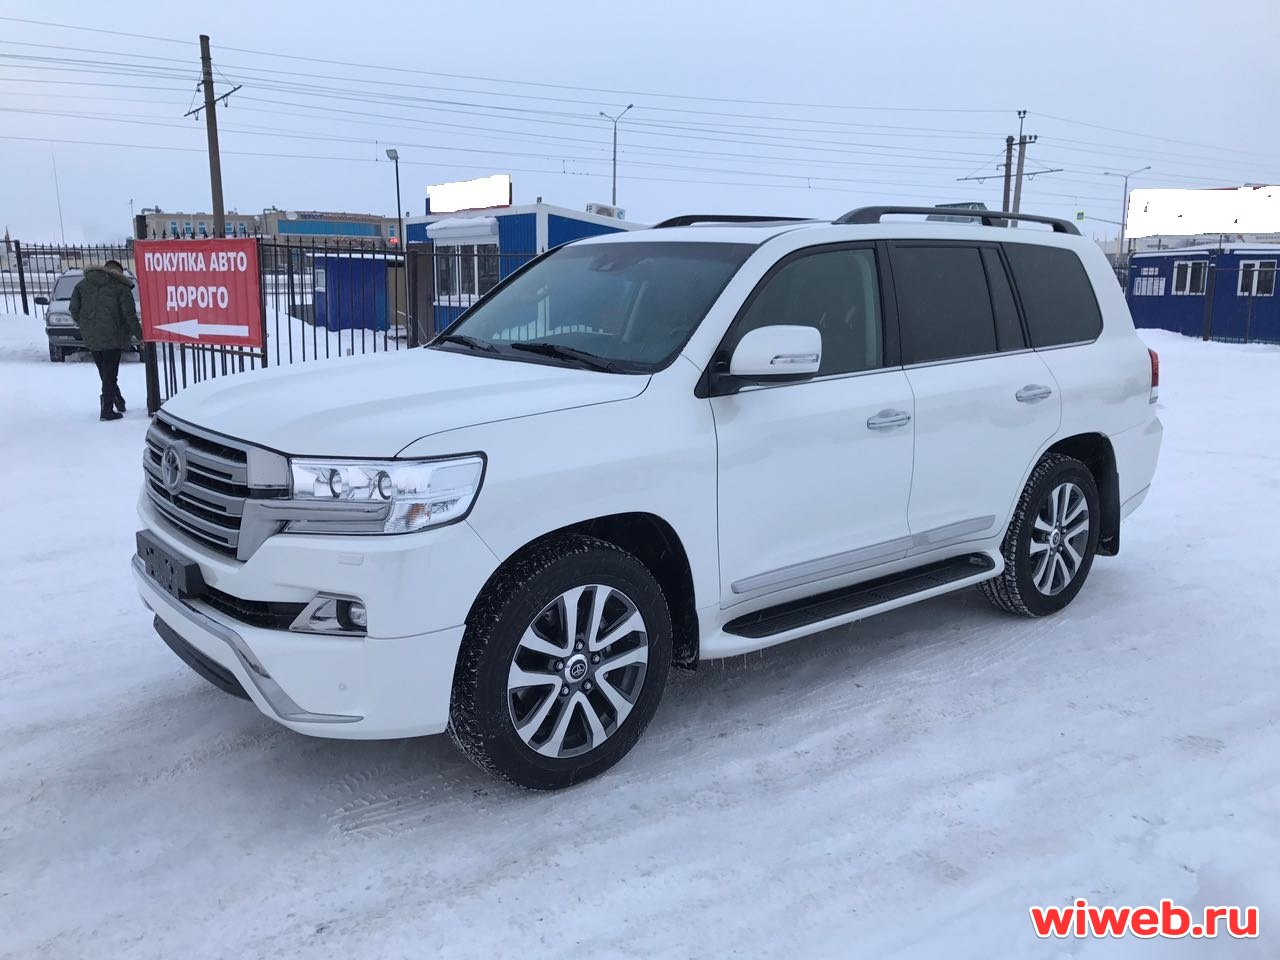 Toyota Land Cruiser 200 2016